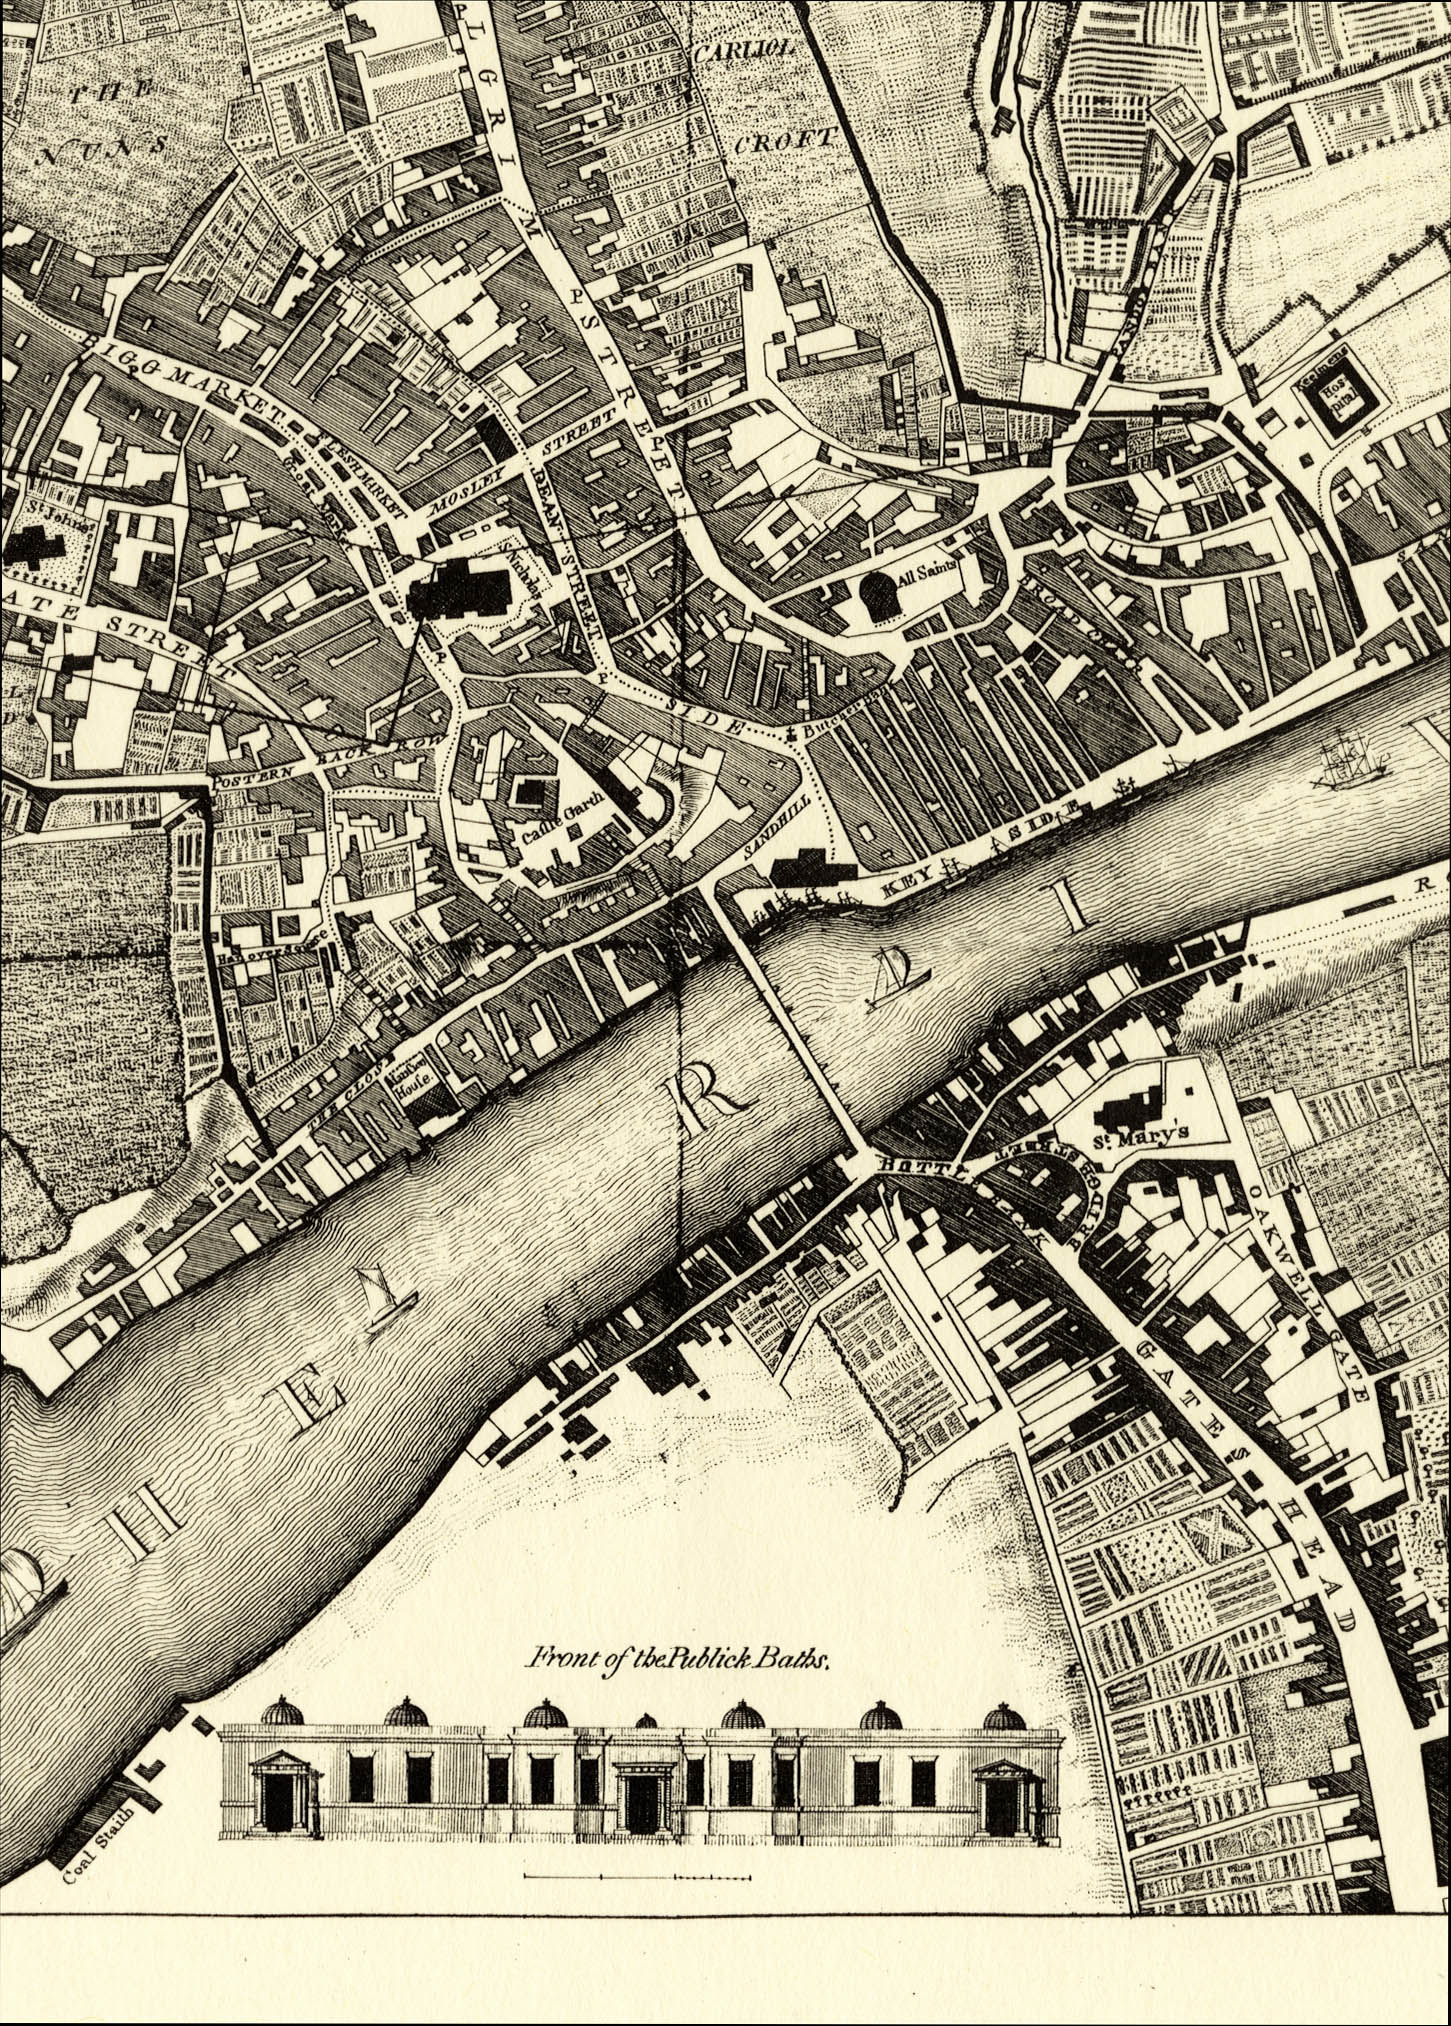 A Plan of Newcastle upon Tyne, 1778 (Special Collections: Maps collection)